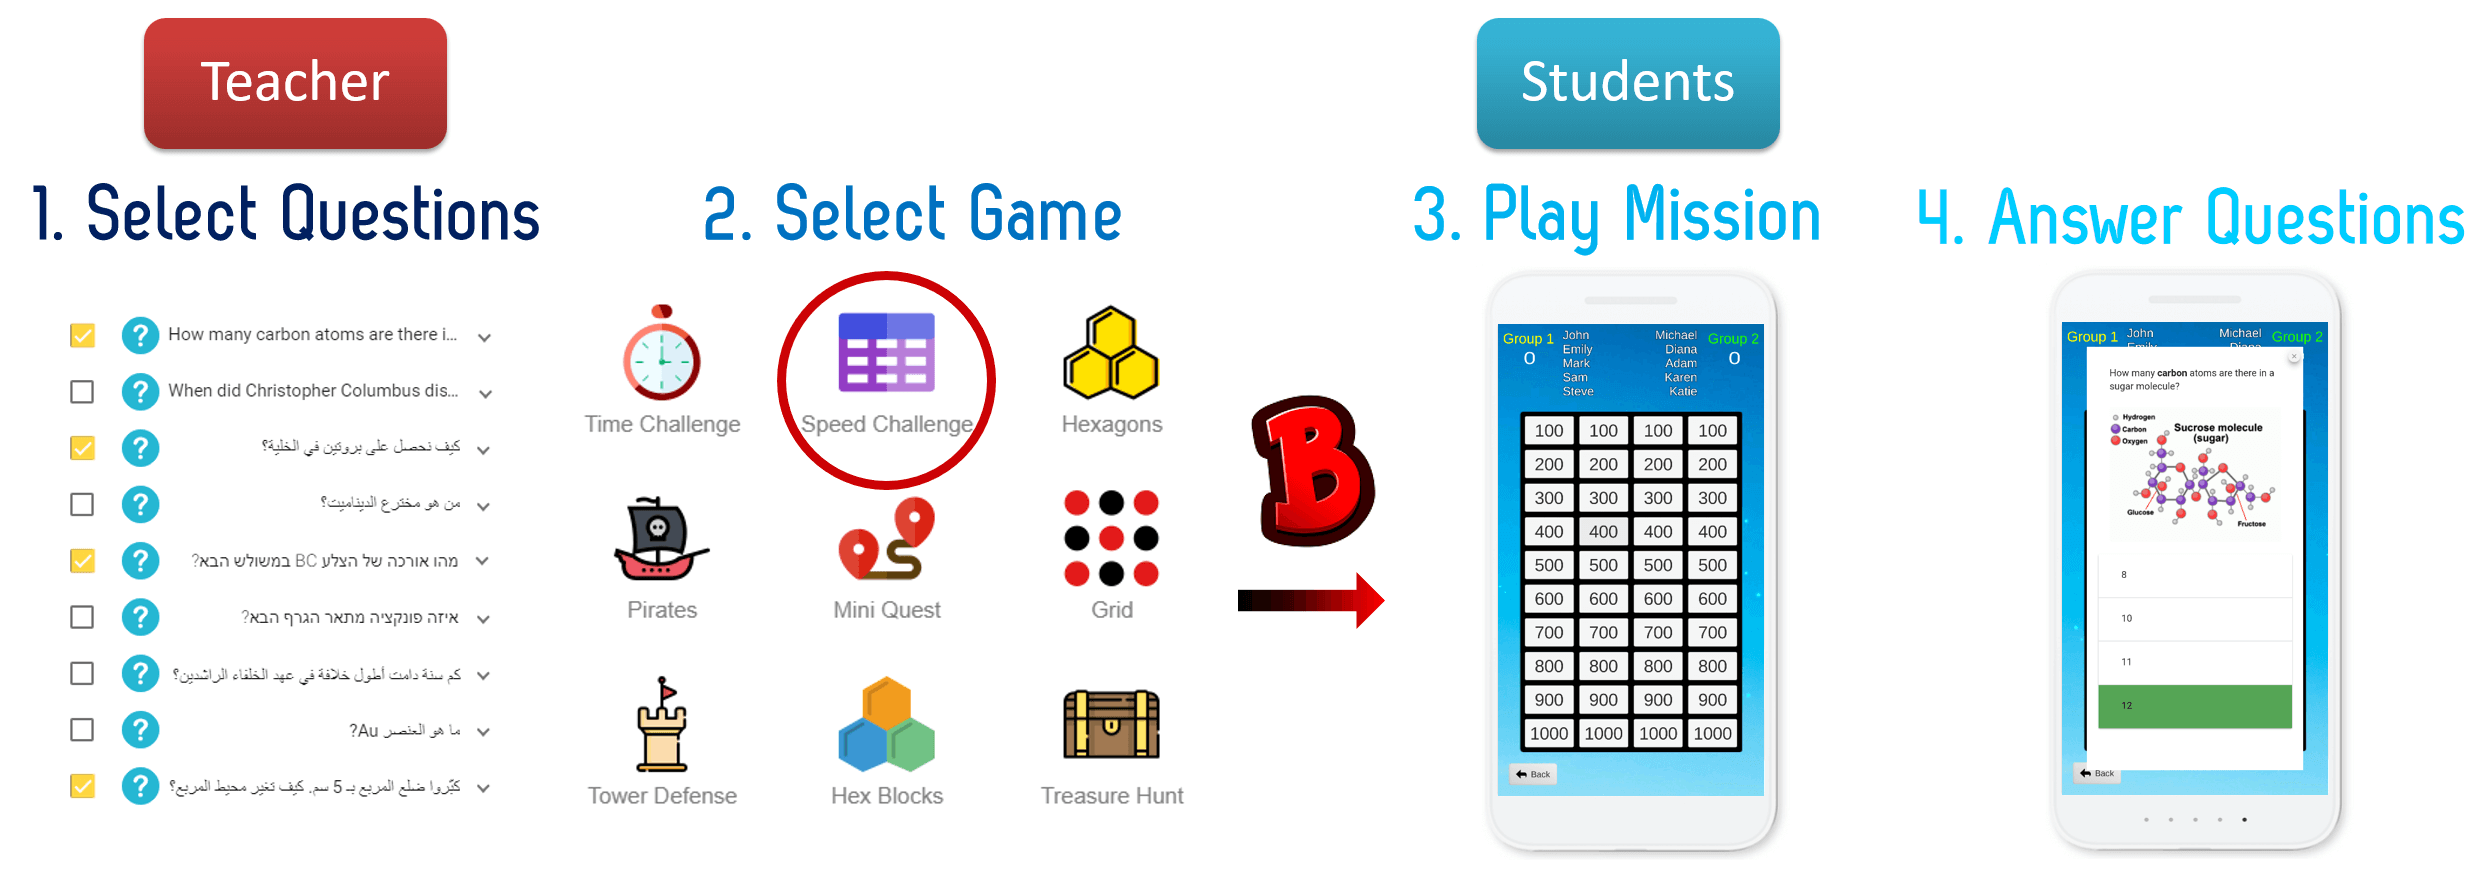 Teacher selects questions and game template, Students play the game while answering questions.